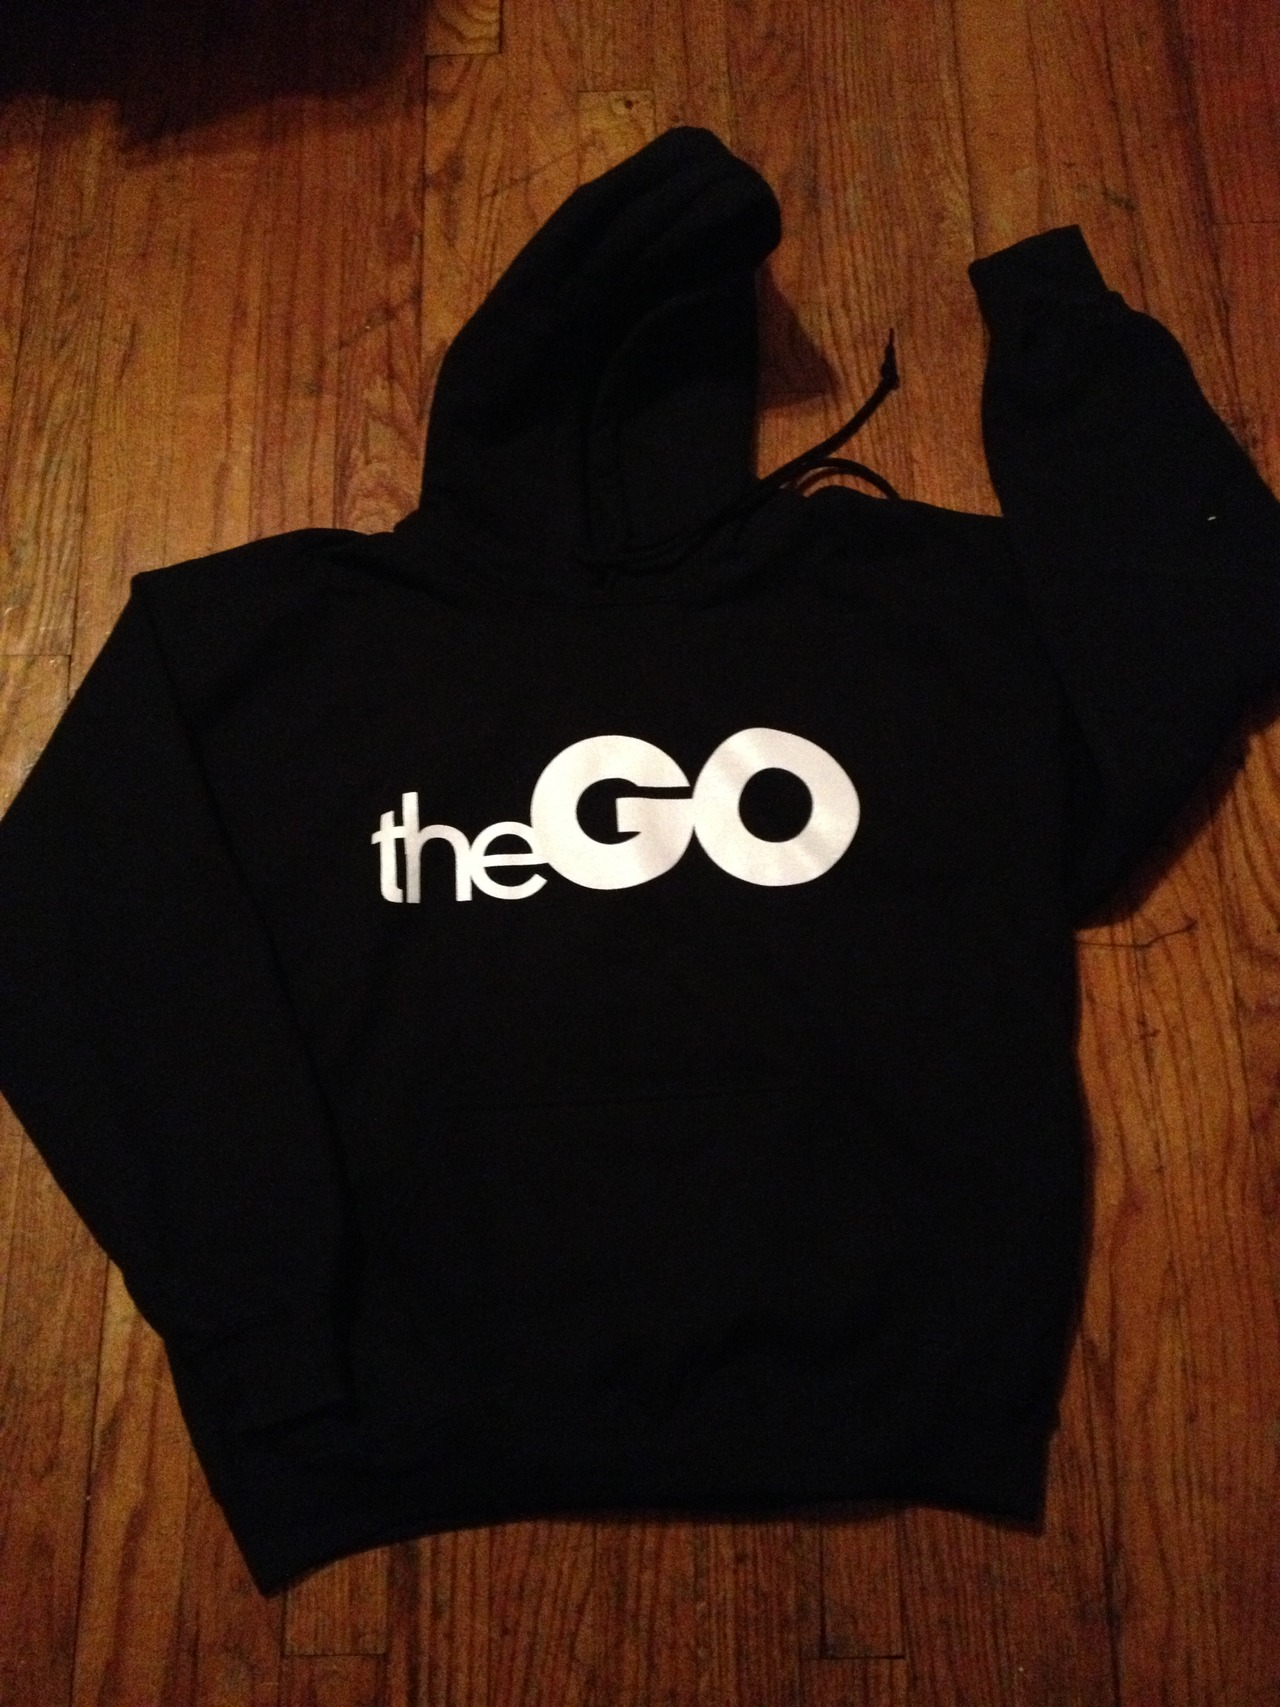 Rep Chicago and Purchase #theGOhoodie click the pic to go directly to the site…FREE SHIPPING in U.S.